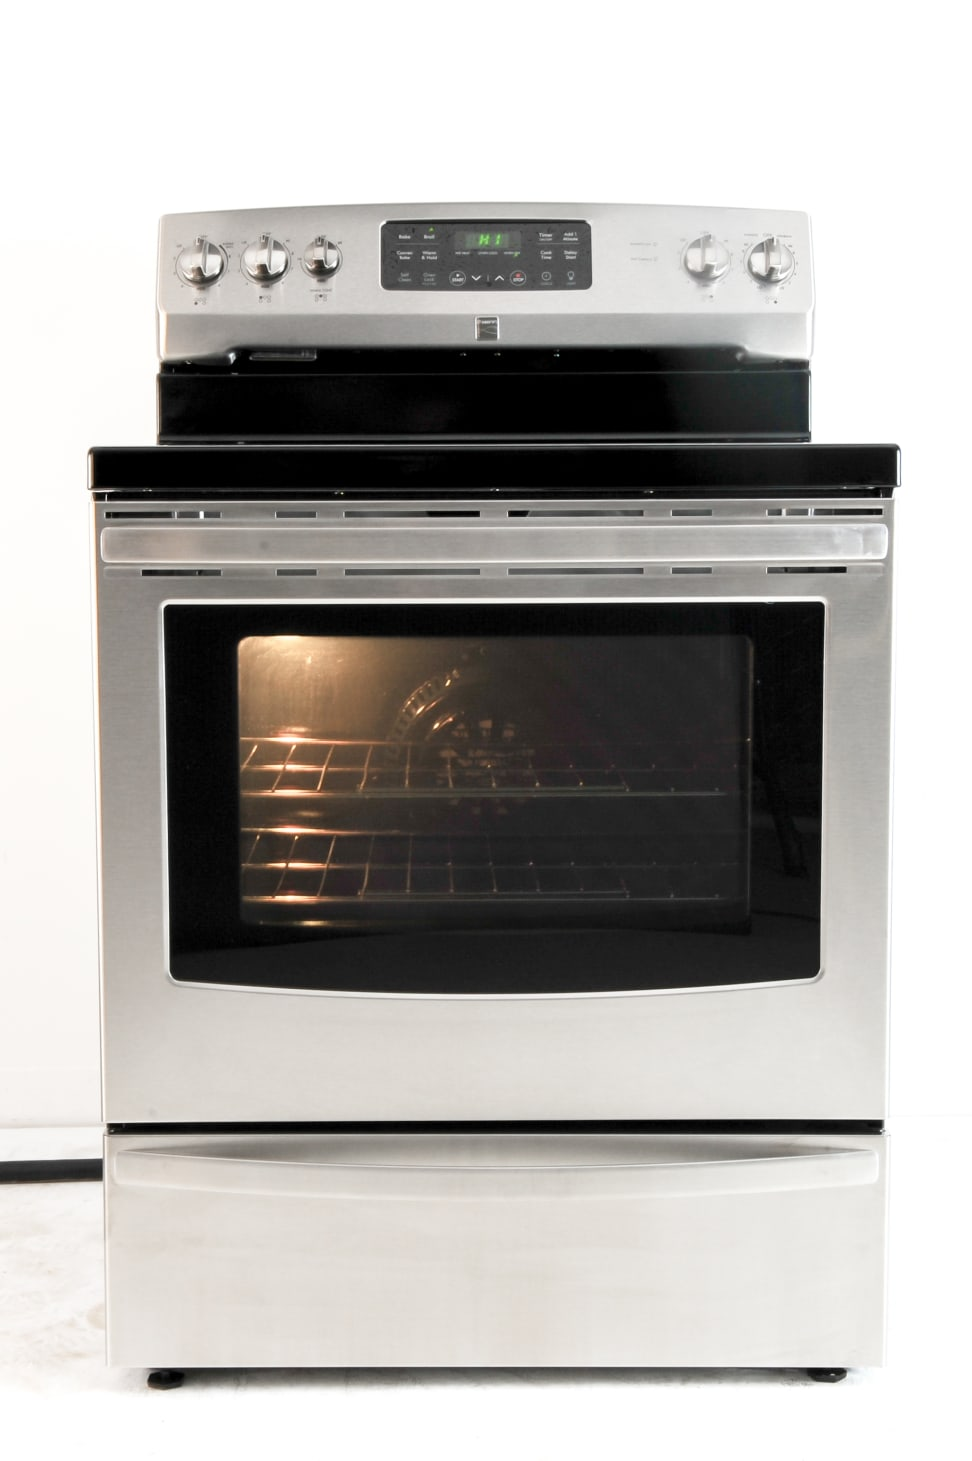 kenmore 94193 electric range with convection oven review ovens. Black Bedroom Furniture Sets. Home Design Ideas